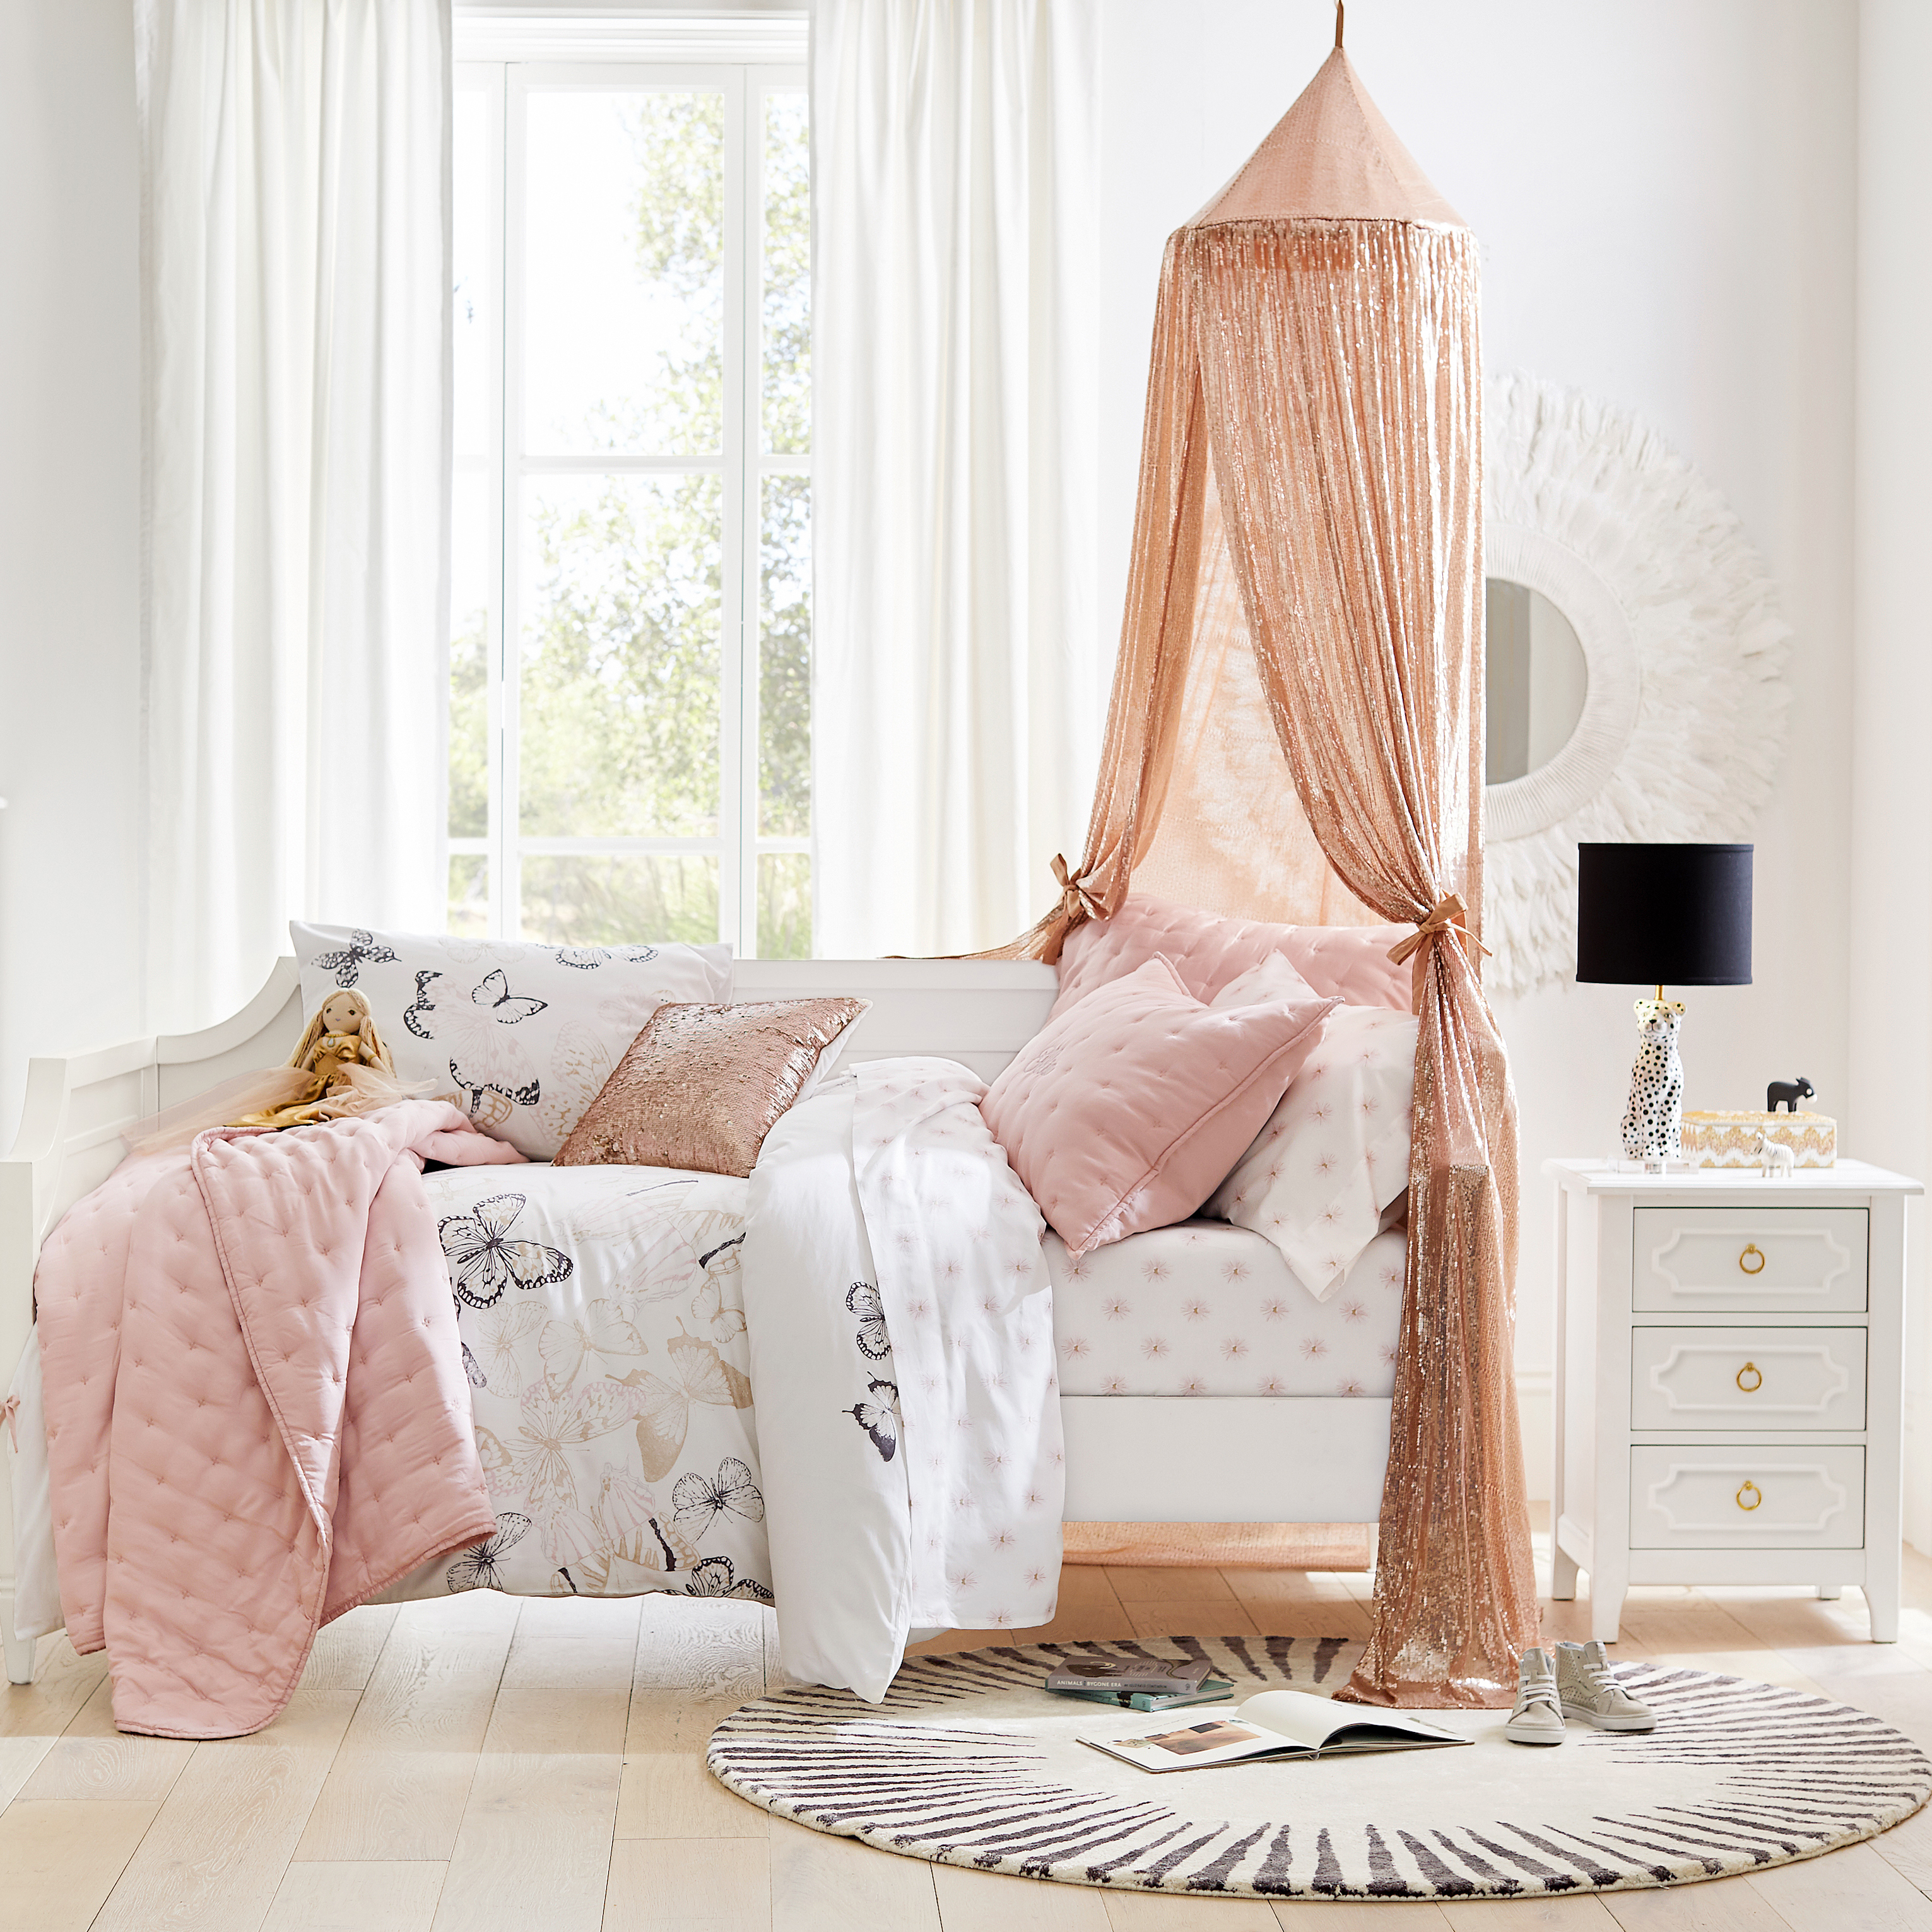 Pottery Barn Kids And Pottery Barn Teen Collaboration With